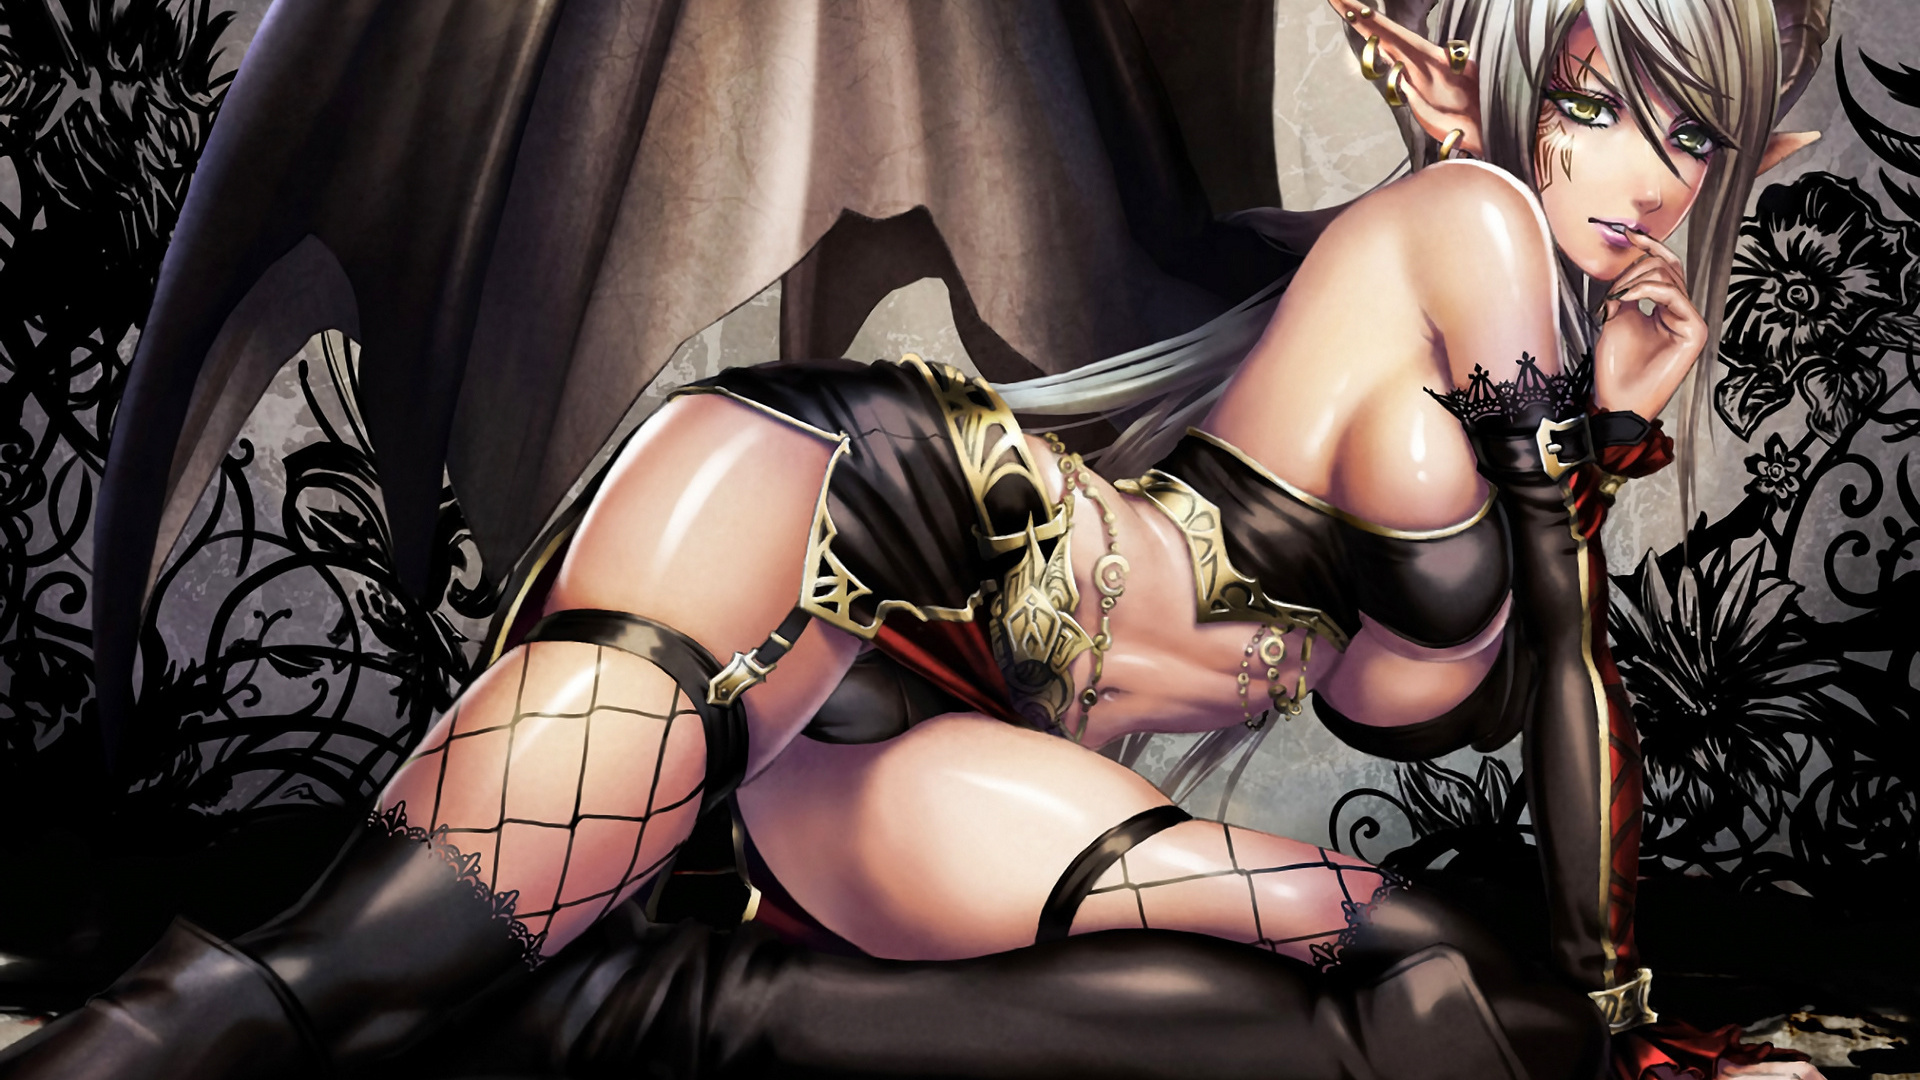 Sexy succubus slave girls adult pic